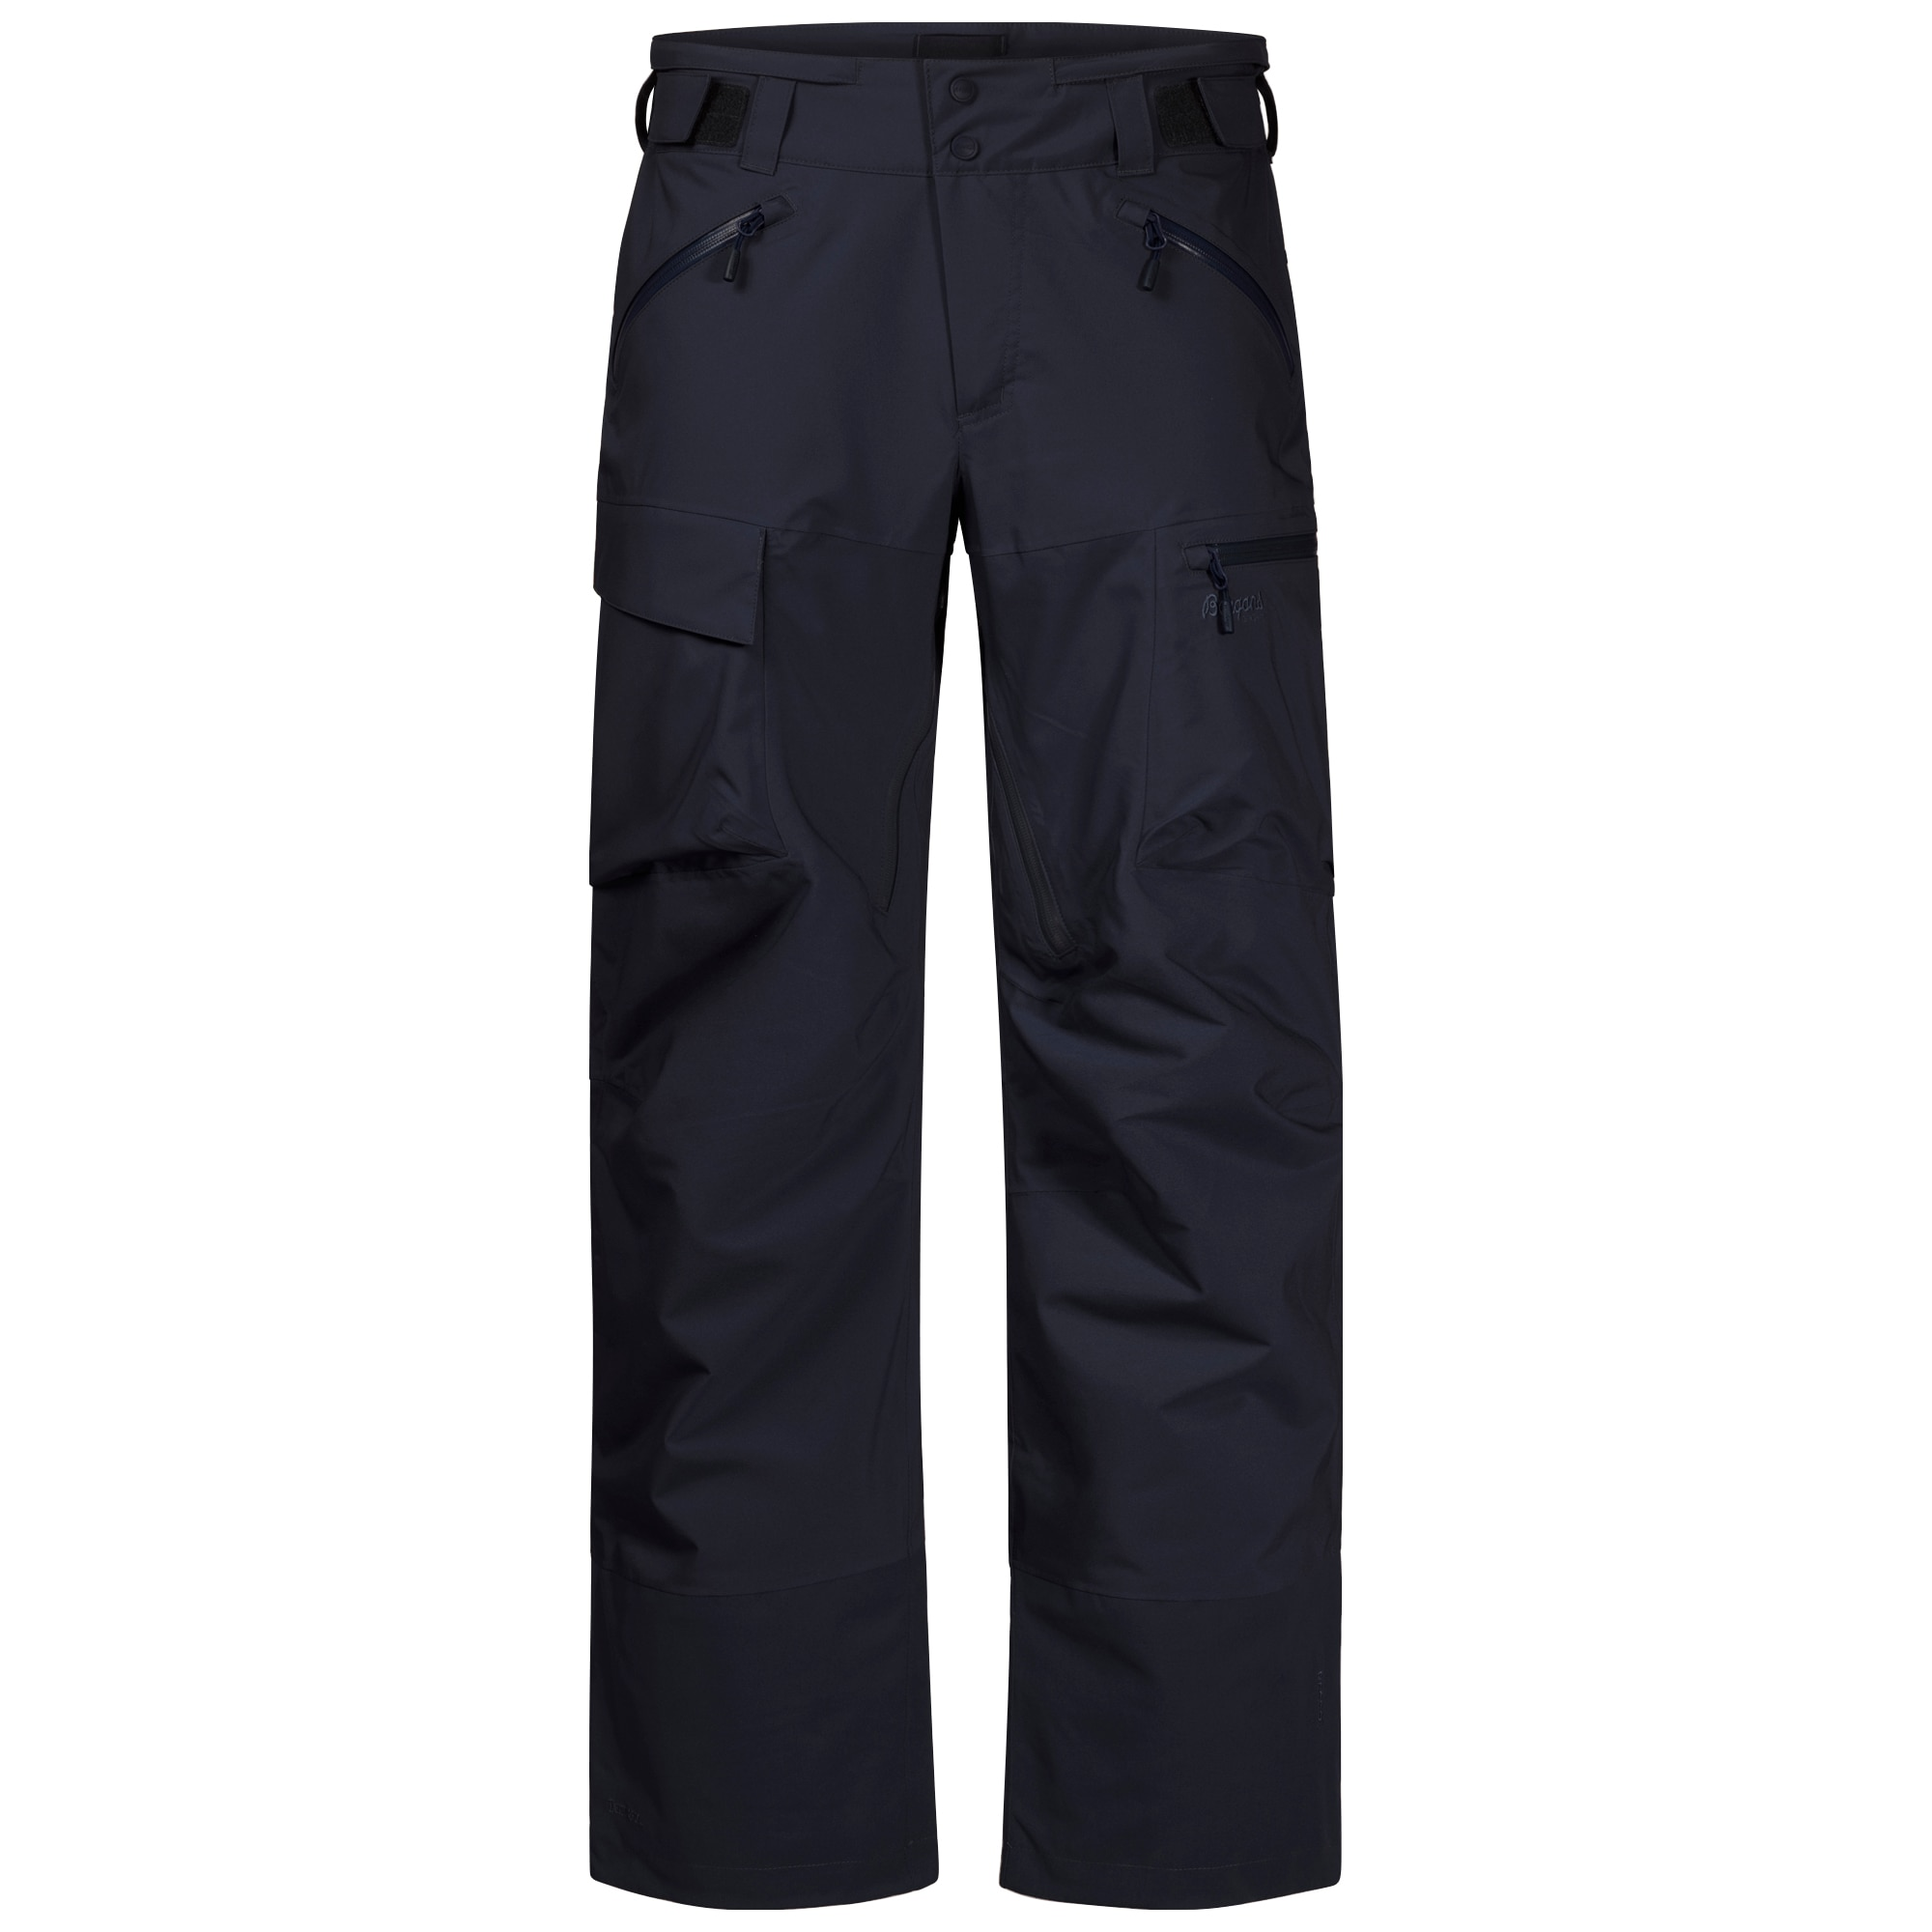 Hafslo Insulated Pants